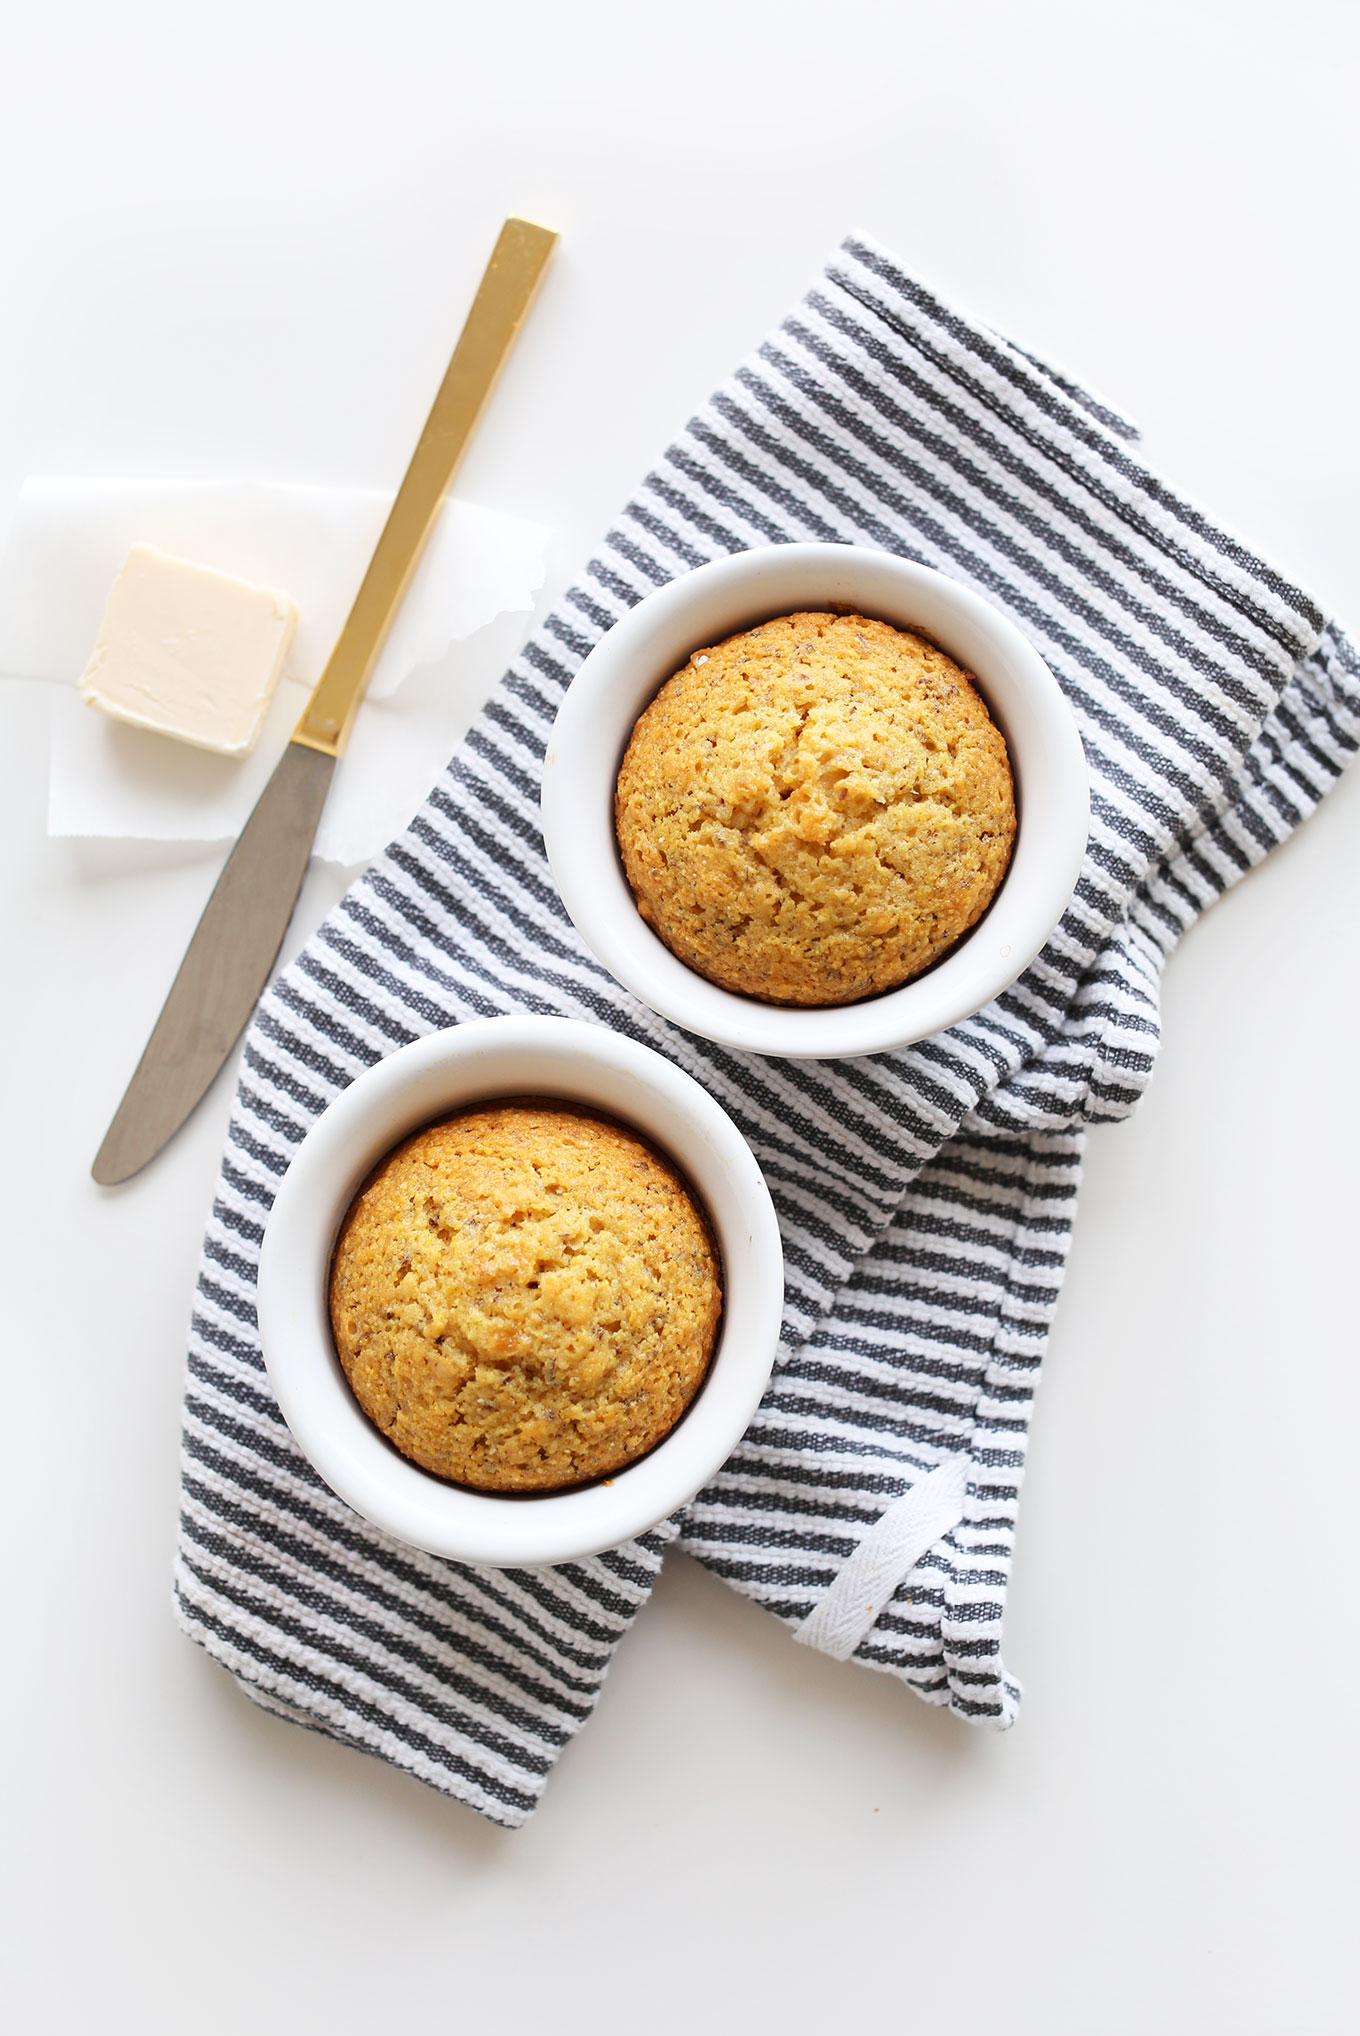 Two Vegan Cornbread Muffins in ramekins to be served with chili